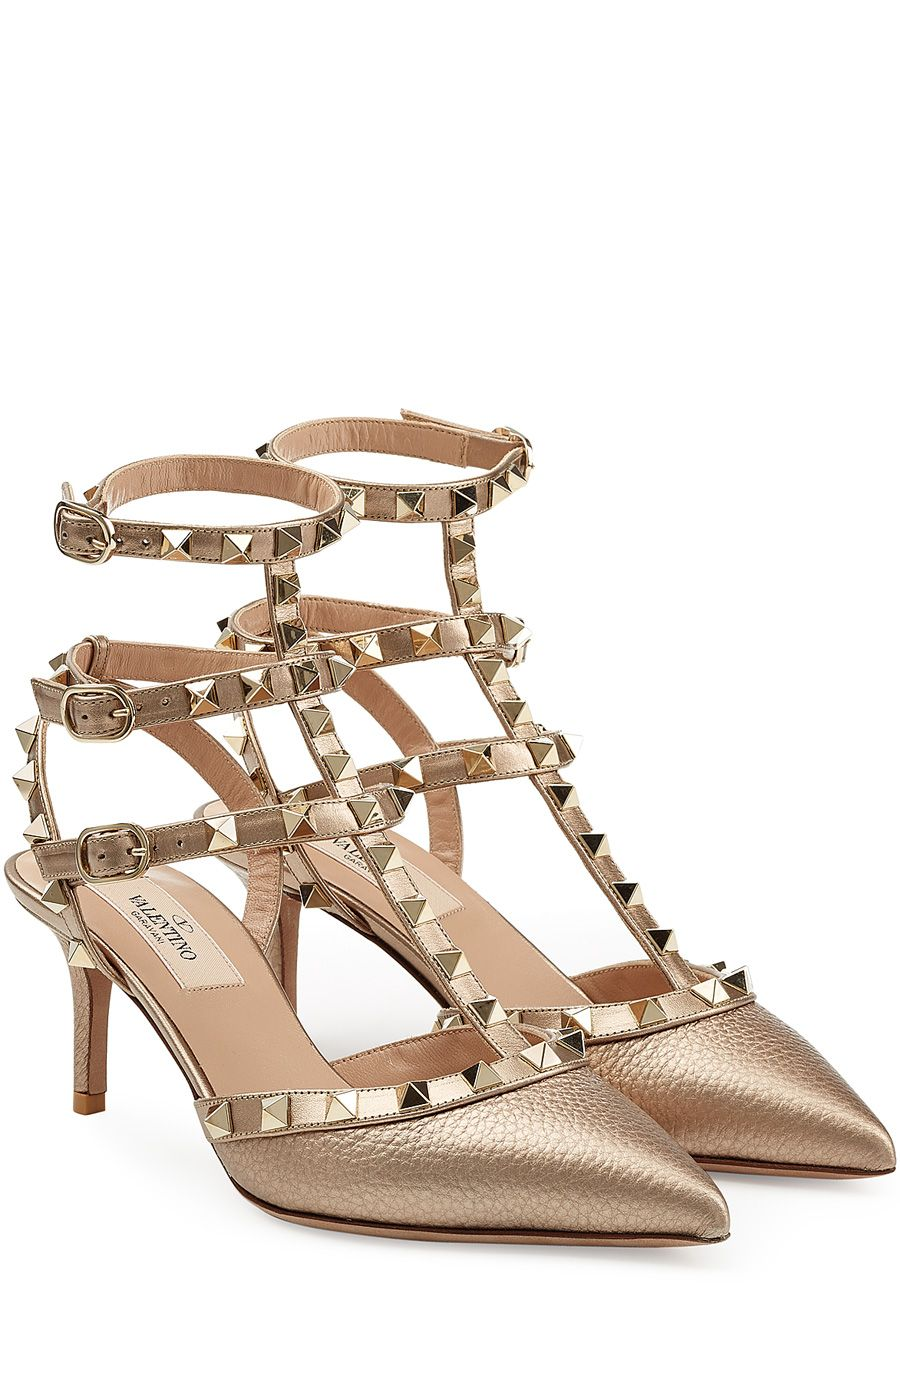 0e7798df57 Leather Rockstud Kitten Heels | Stay calm n buy shoes ;) | Valentino ...